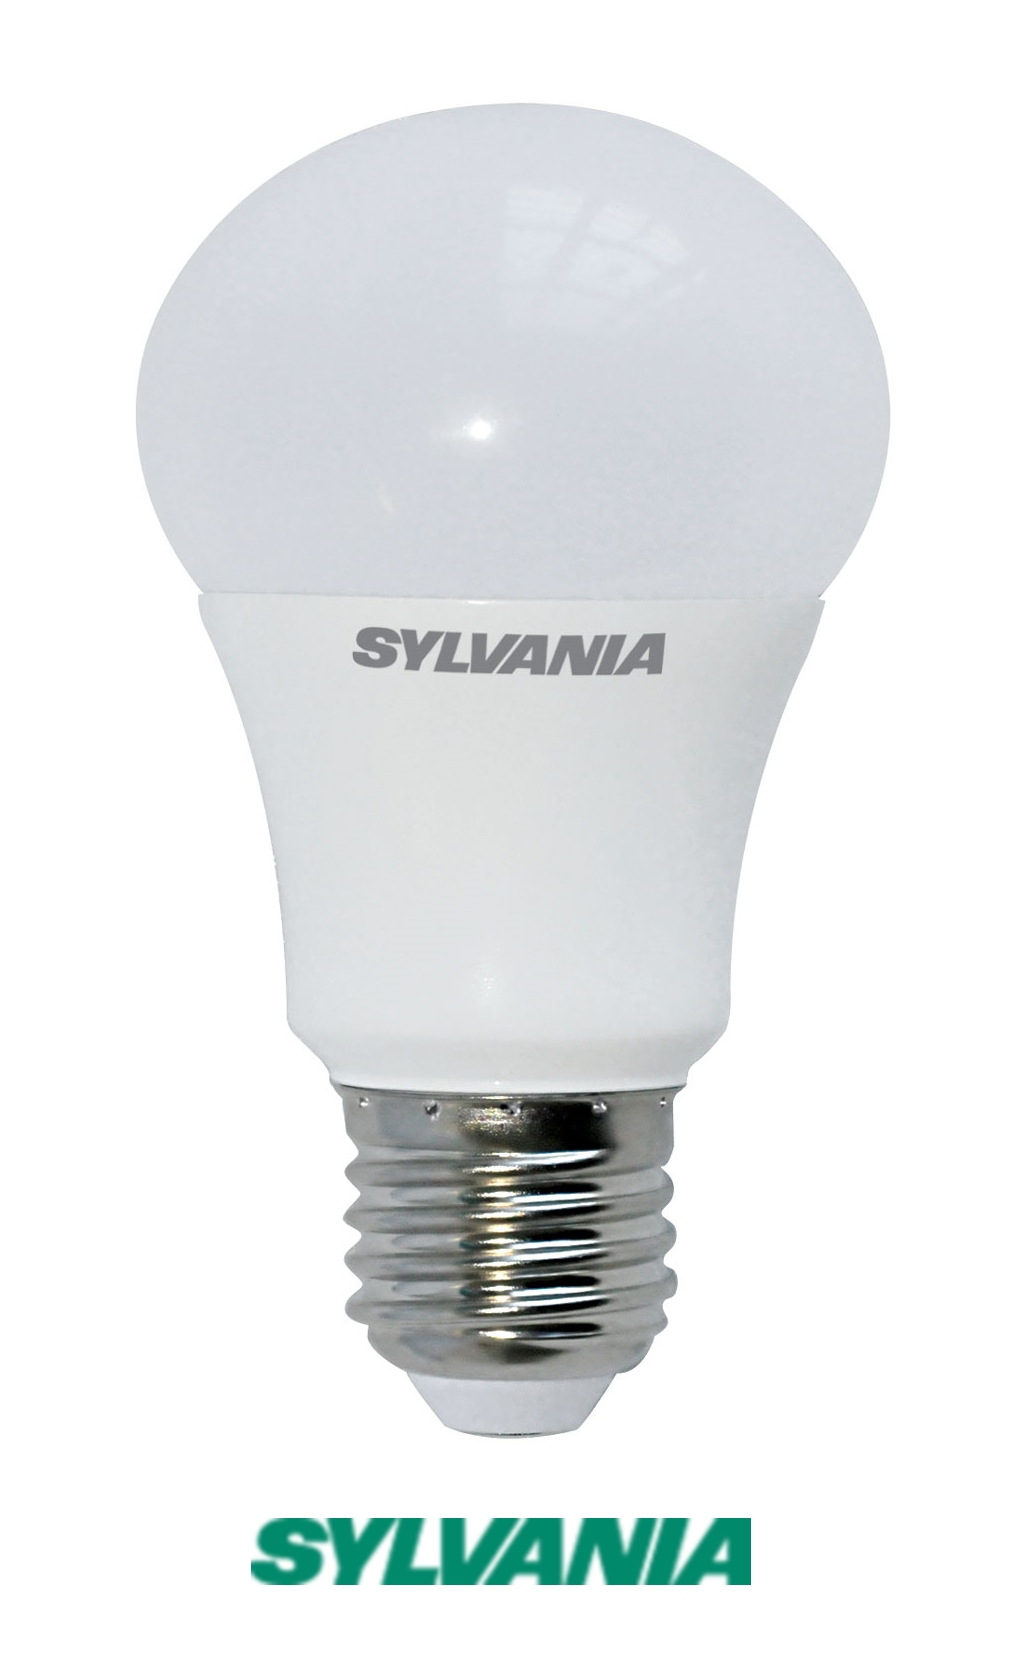 sylvania toledo gls dimmable led bulbs a60 direct retrofit. Black Bedroom Furniture Sets. Home Design Ideas